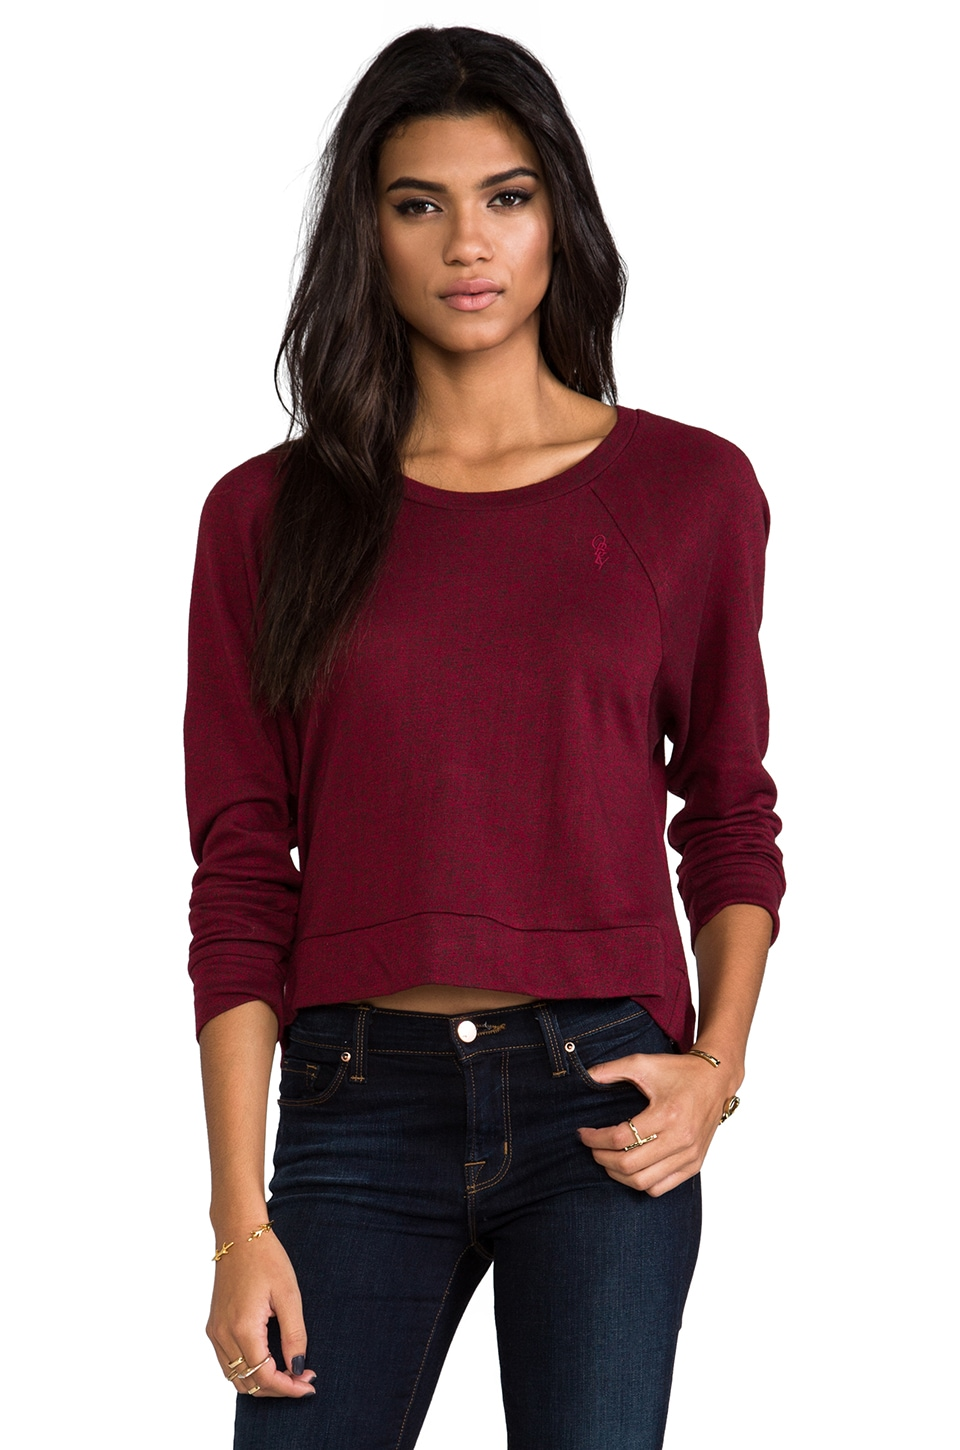 Obey Endless Skies Top in Tibetan Red